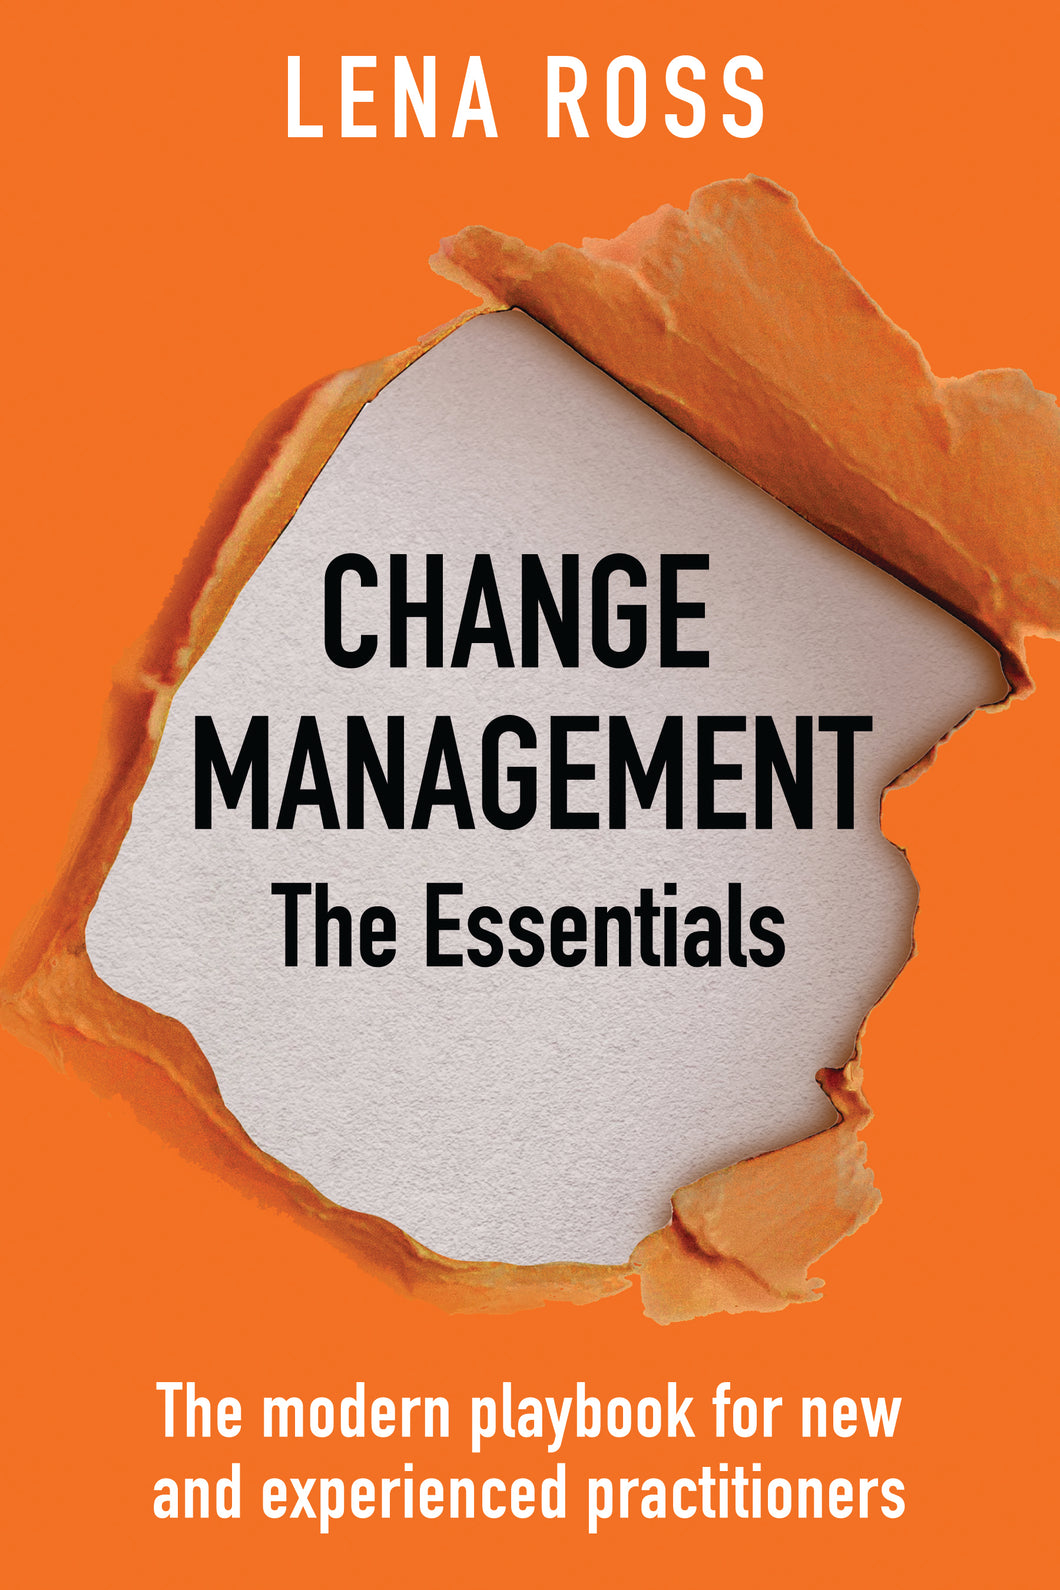 Change Management - The Essentials: The modern playbook for new and experienced practitioners by LENA ROSS